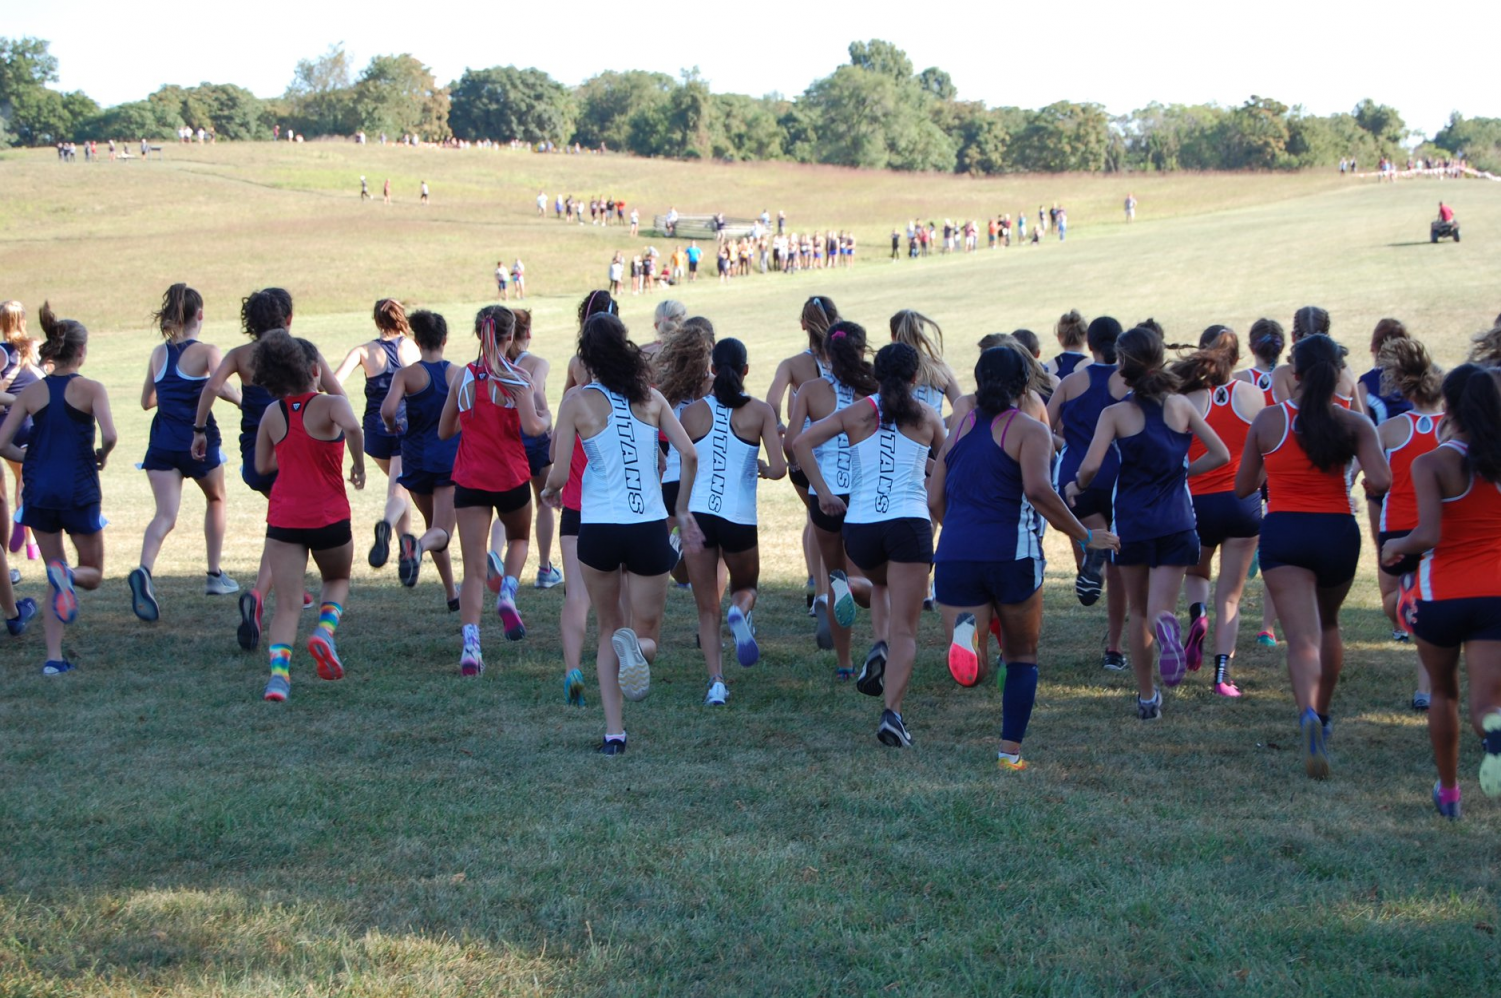 Dominion heads to Oatlands this weekend in one of the biggest meets of the year.